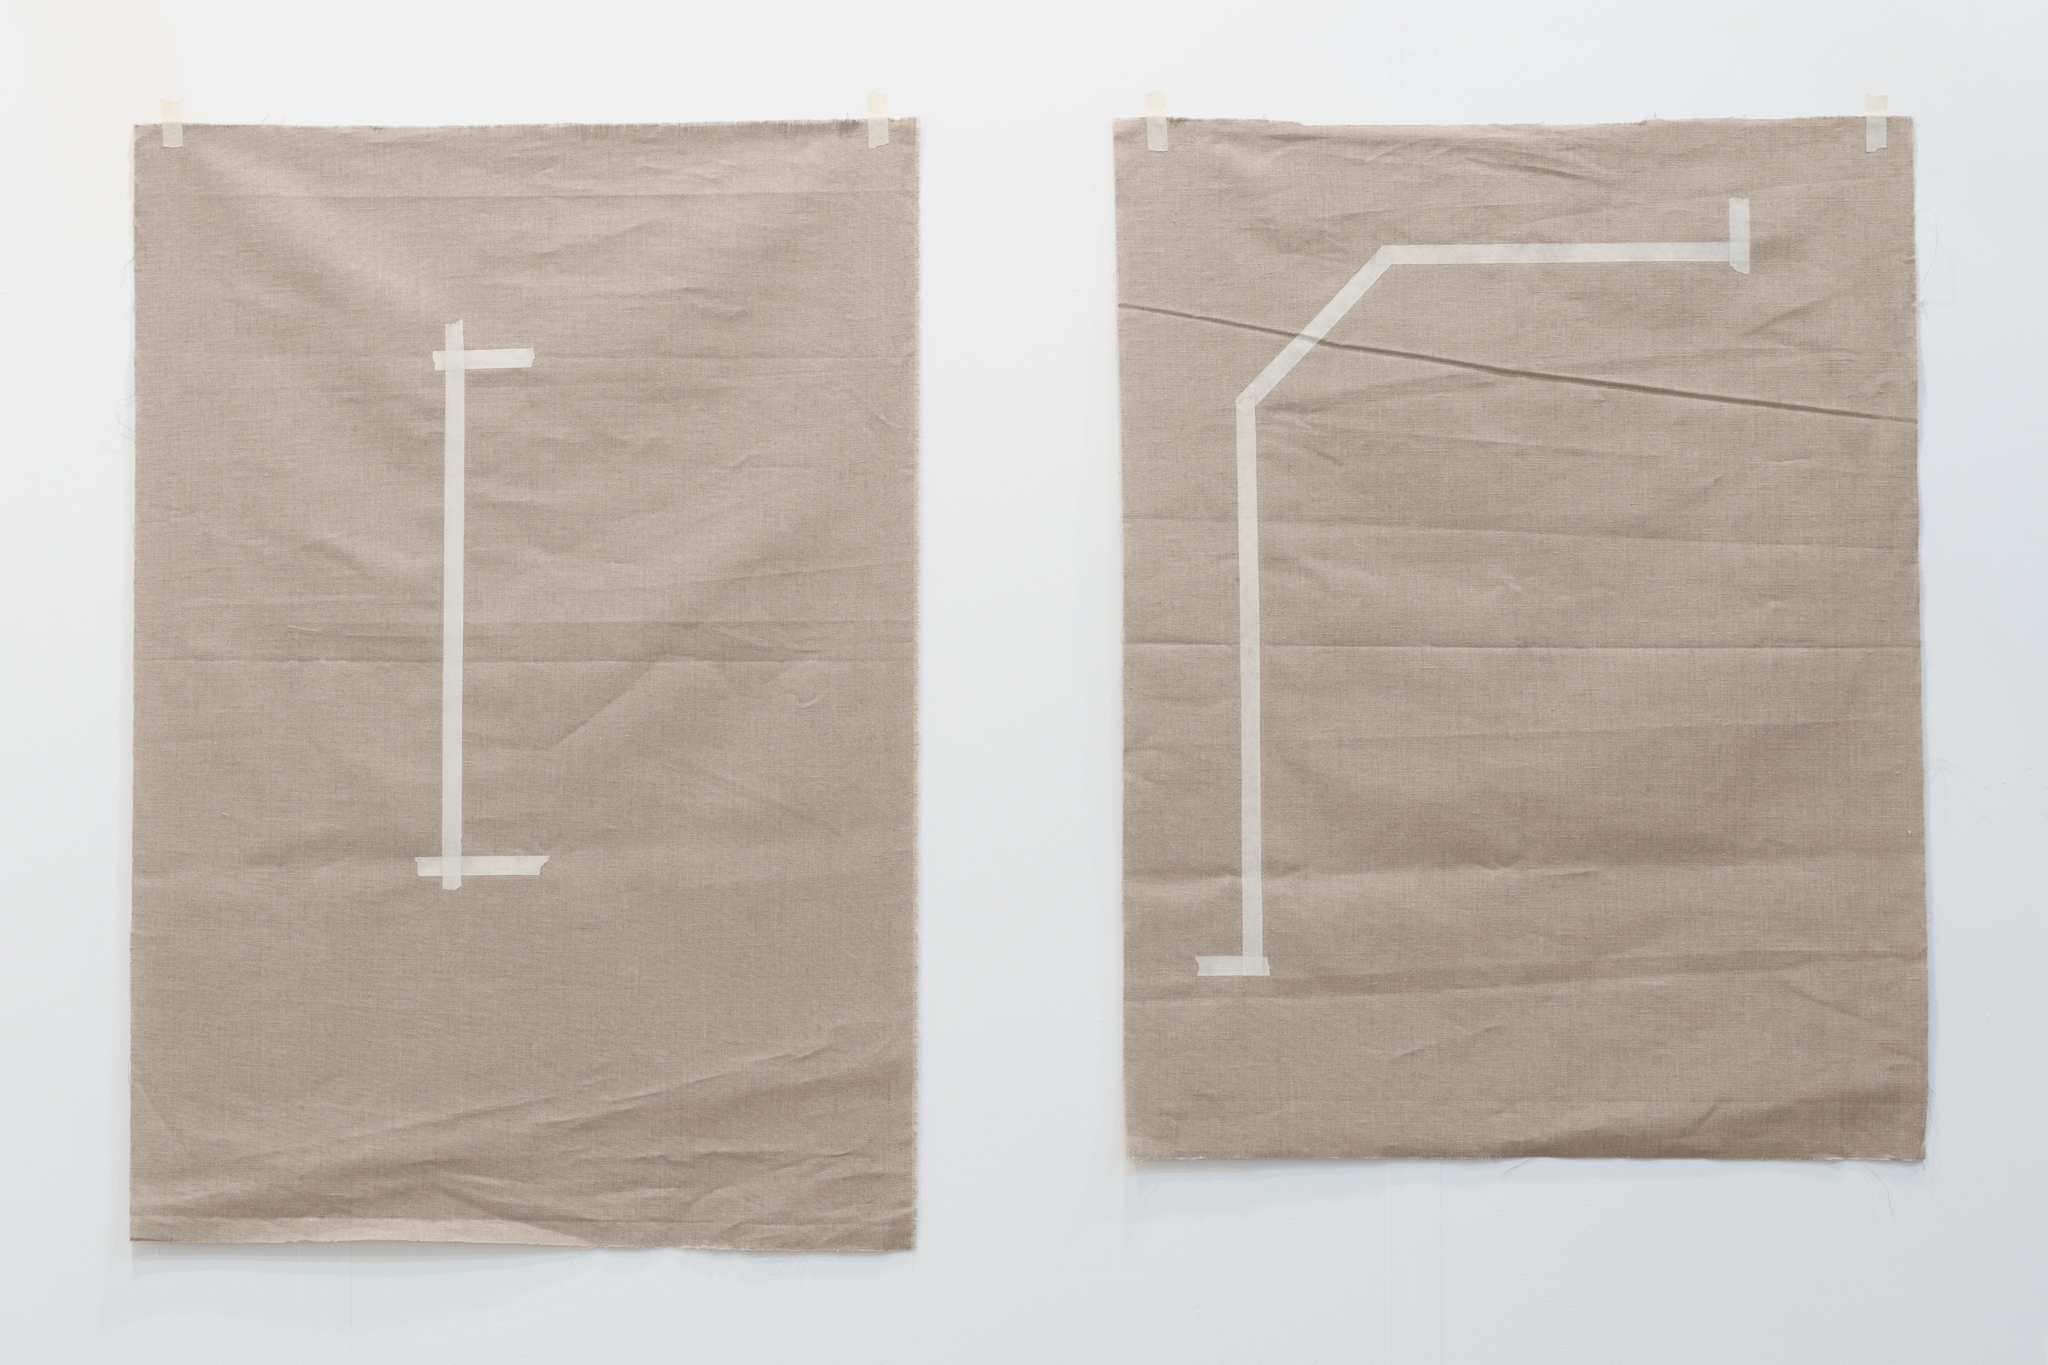 Saúl Sánchez, One After the Other , 2017. Oil, acrlylic on linen, dimensions variable.